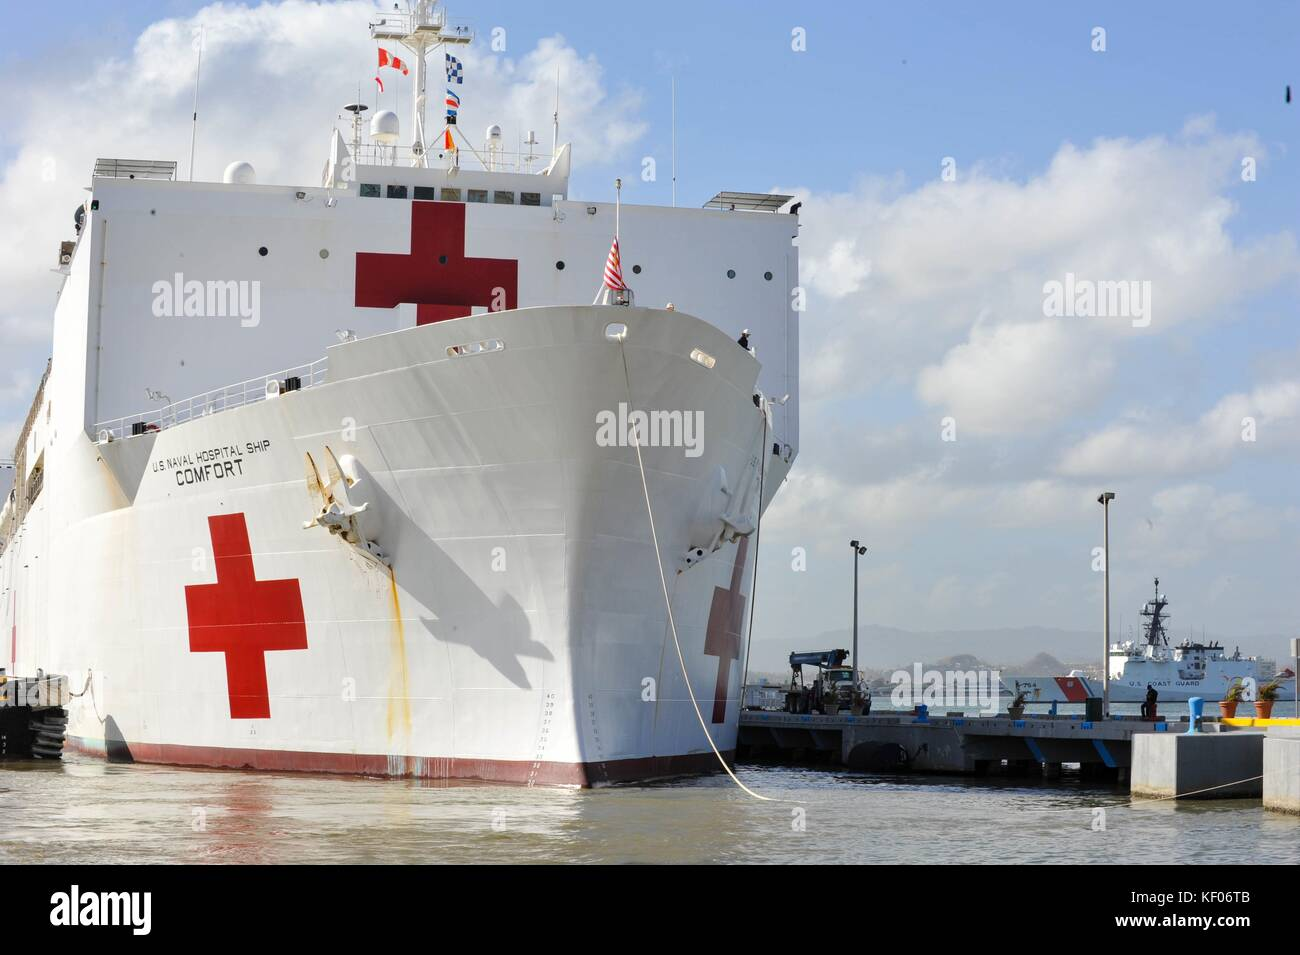 The U.S. Navy Mercy-class hospital ship USNS Comfort arrives in port after Hurricane Maria to provide disaster relief - Stock Image